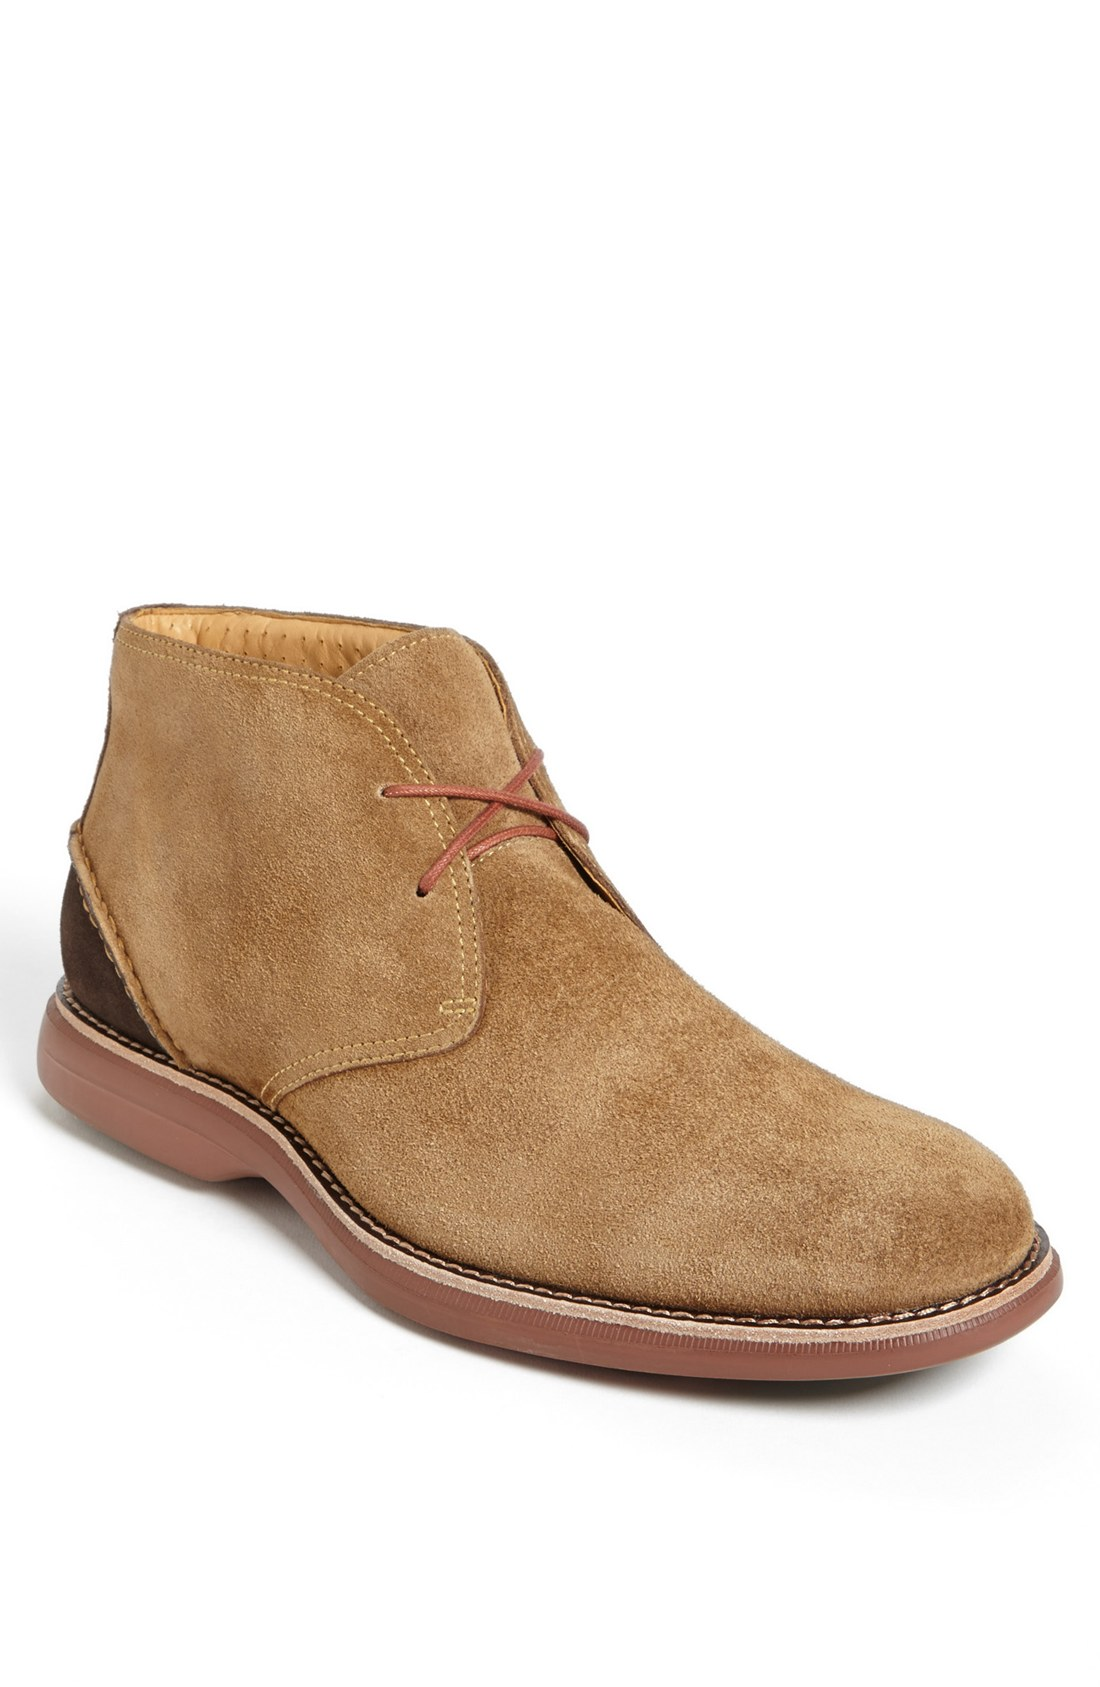 Sperry Top Sider Gold Cup Bellingham Chukka Boot In Brown